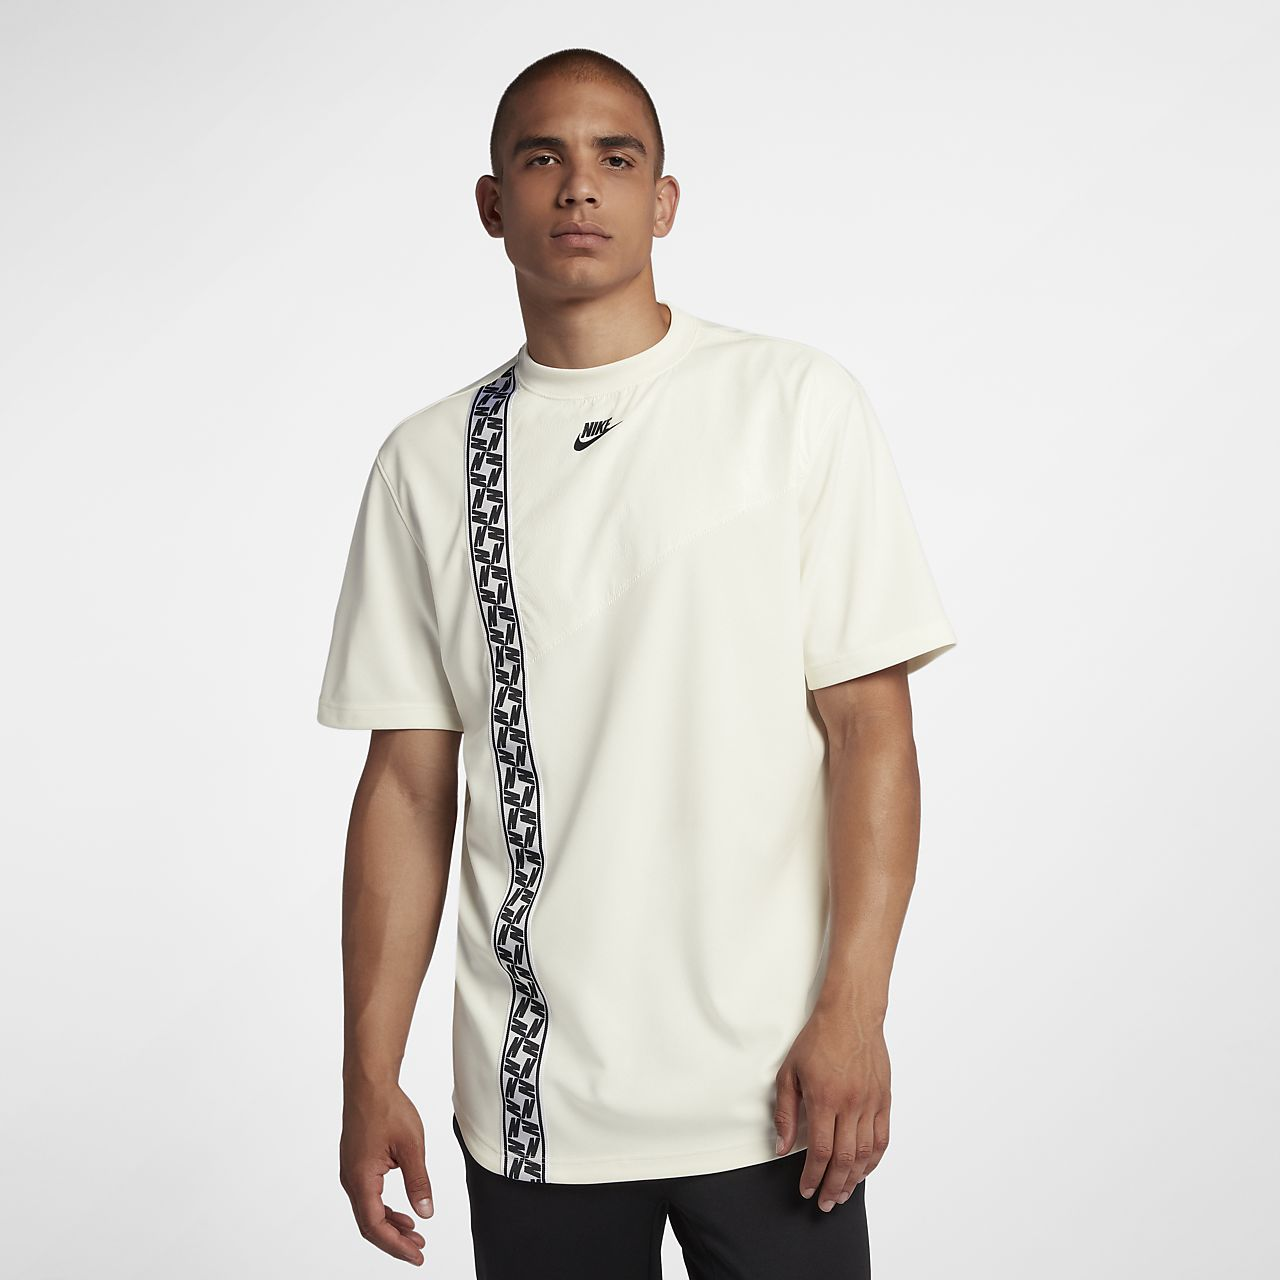 Nike Sportswear Men s Short-Sleeve Top. Nike.com GB 4a332b25c606